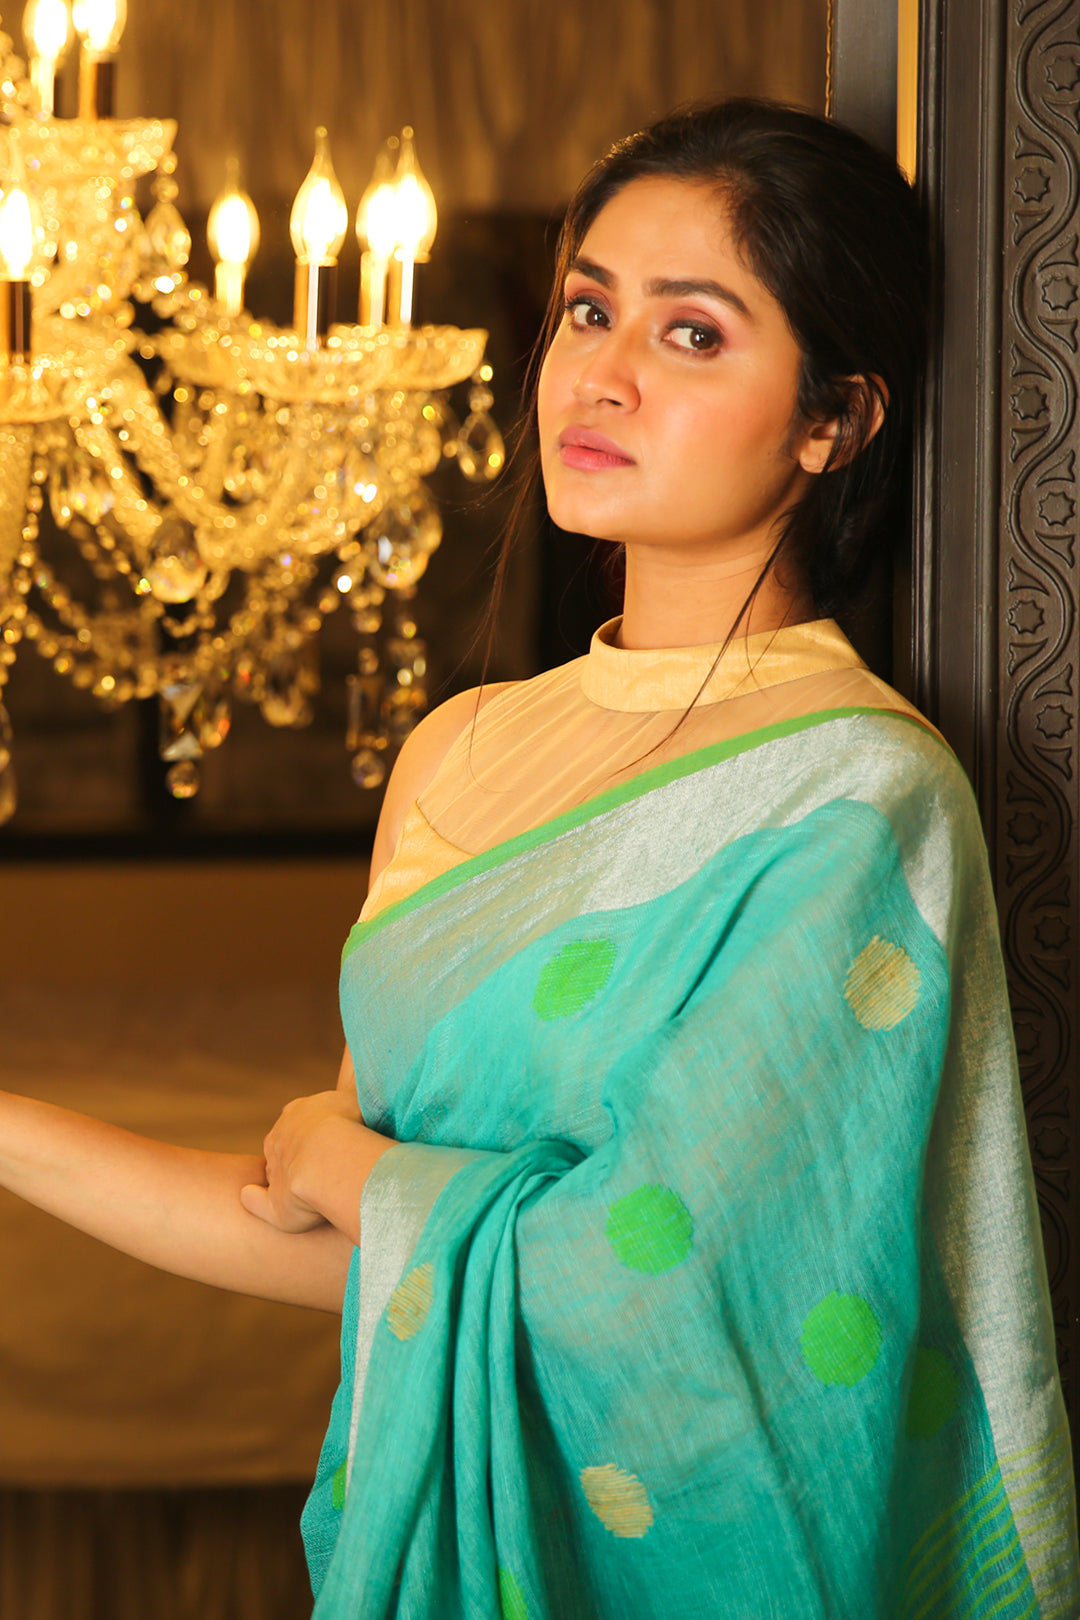 SKY BLUE ZARI BORDERED PURE LINEN WITH POLKA DOT WEAVING AND GREEN PALLU